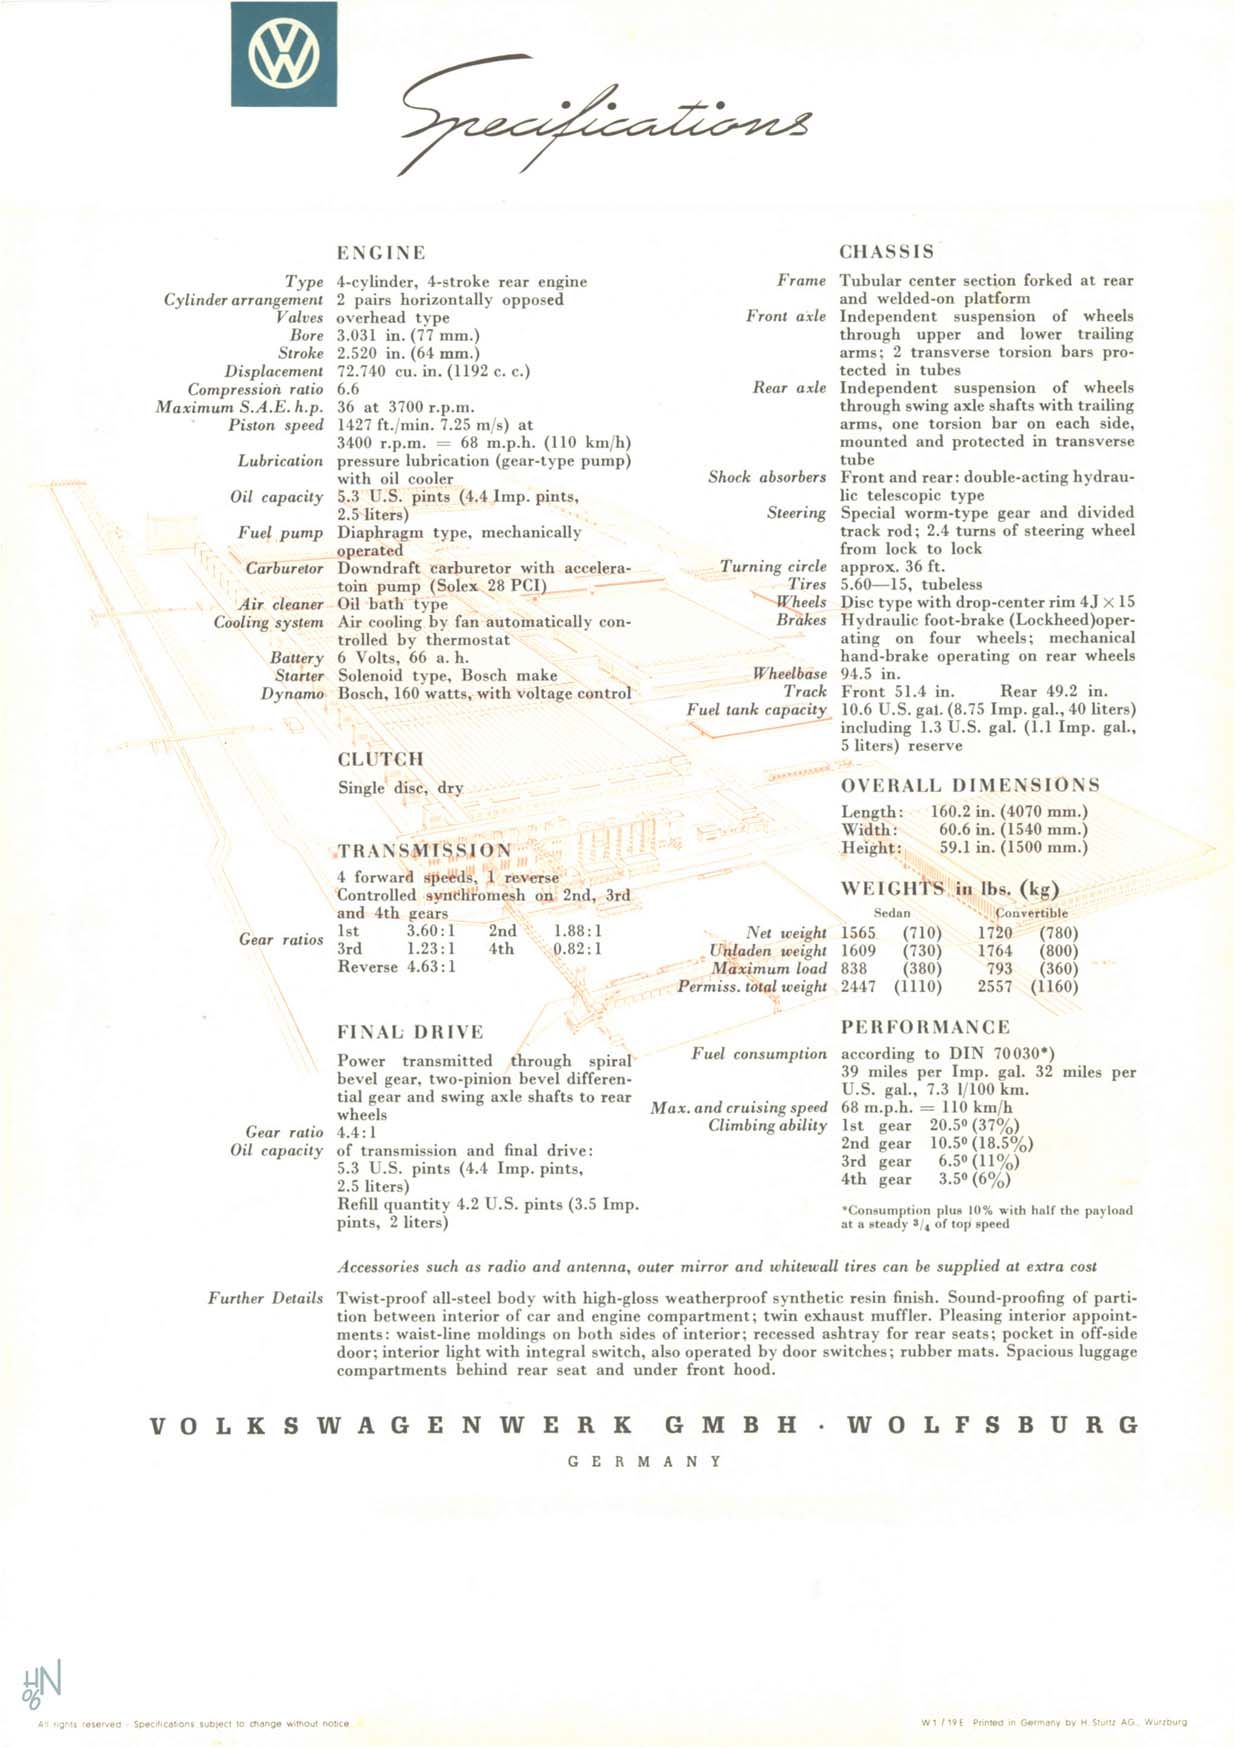 1954 VW Beetle U S brochure page 12